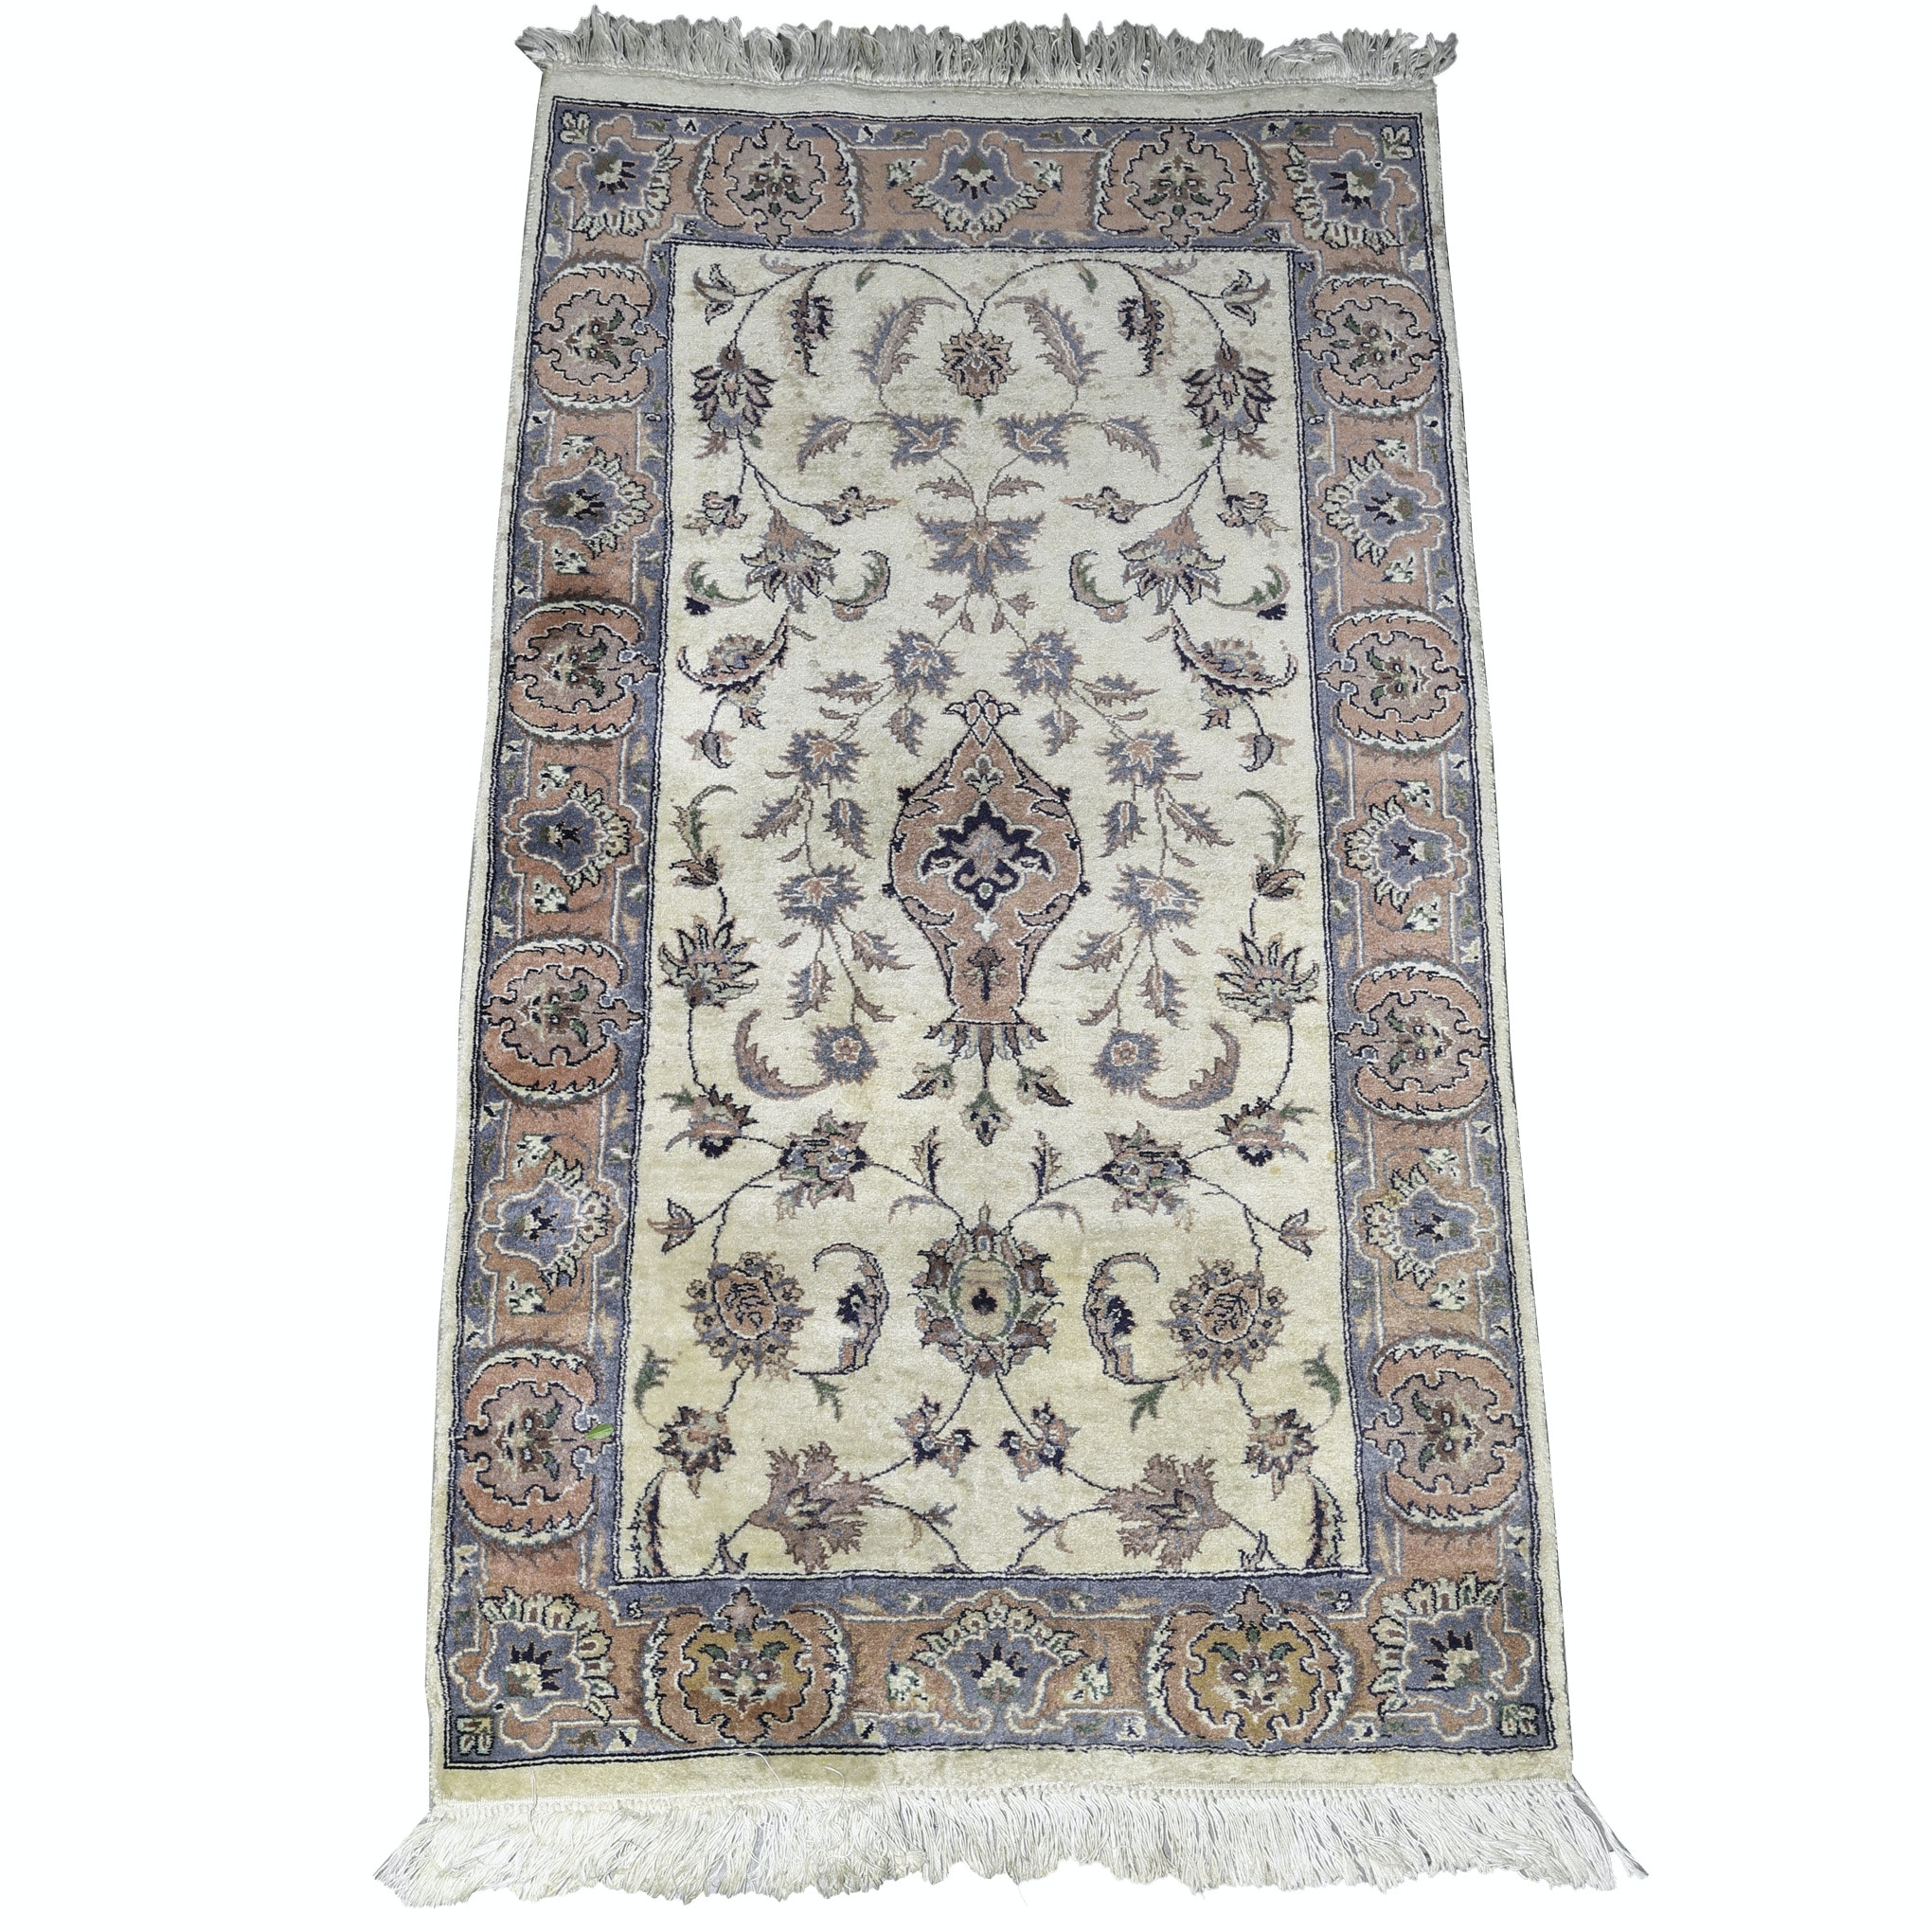 Vintage Hand-Knotted Indo-Persian Wool Accent Rug